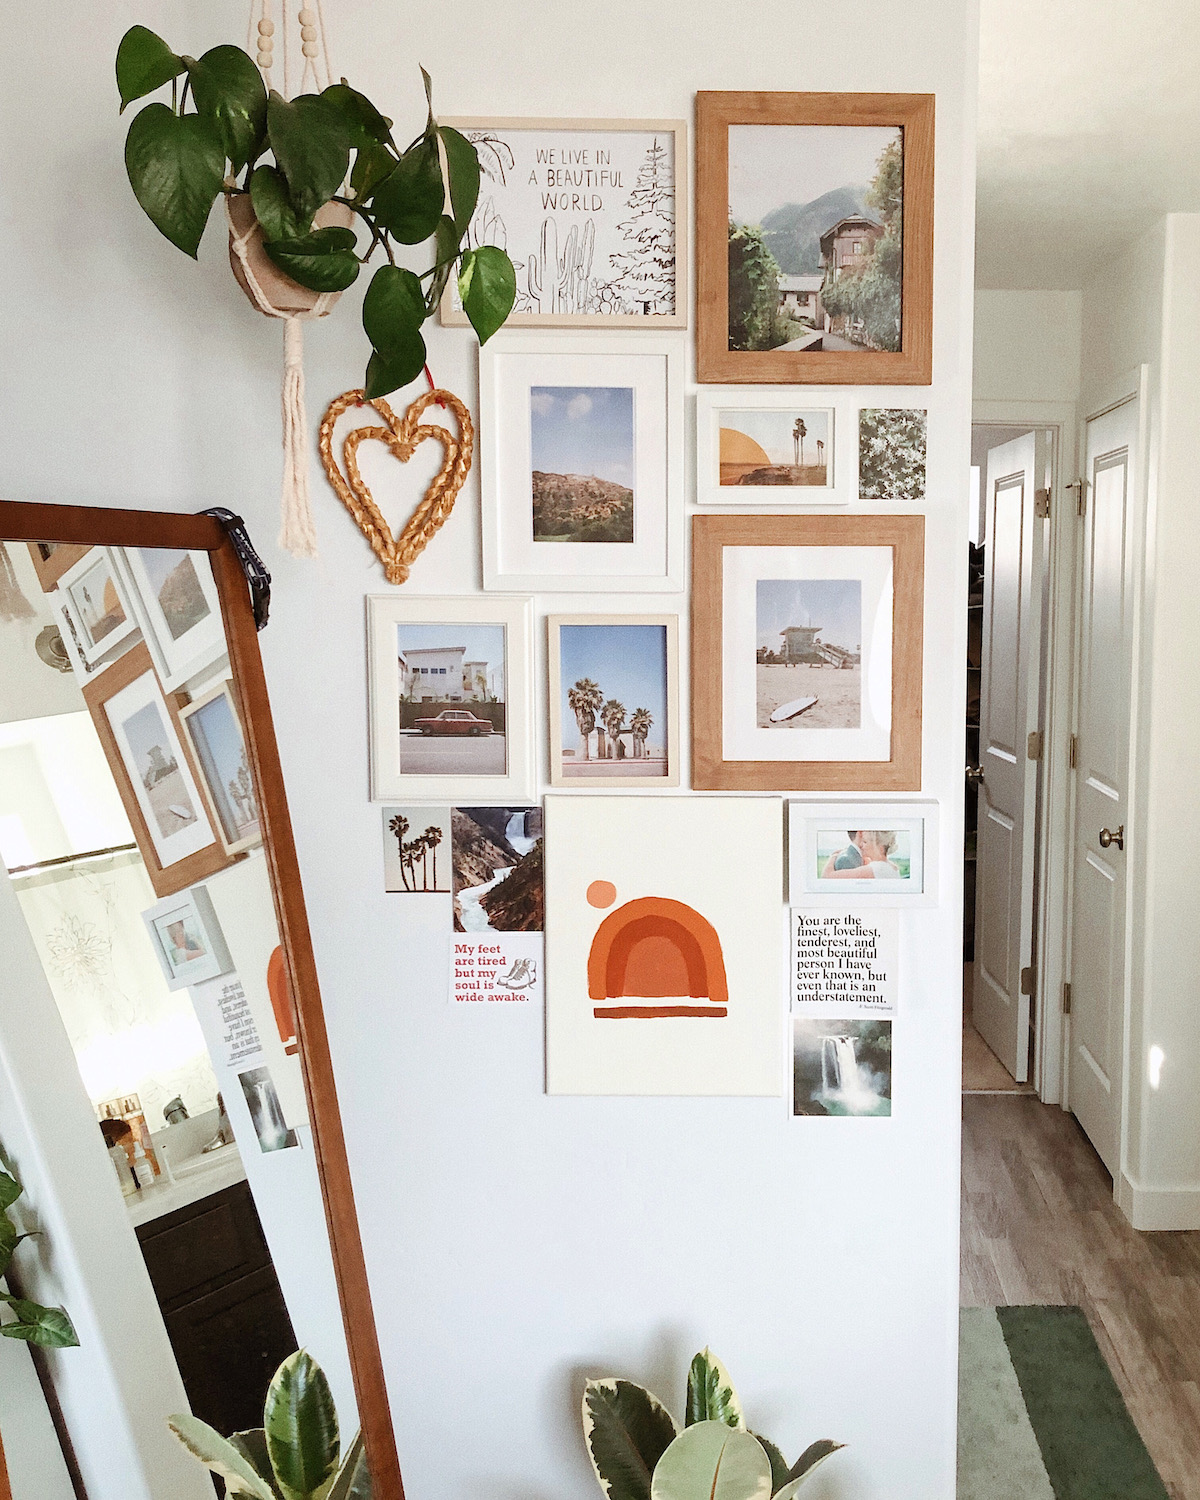 Gallery wall comprised of photos and other art, with or without frames